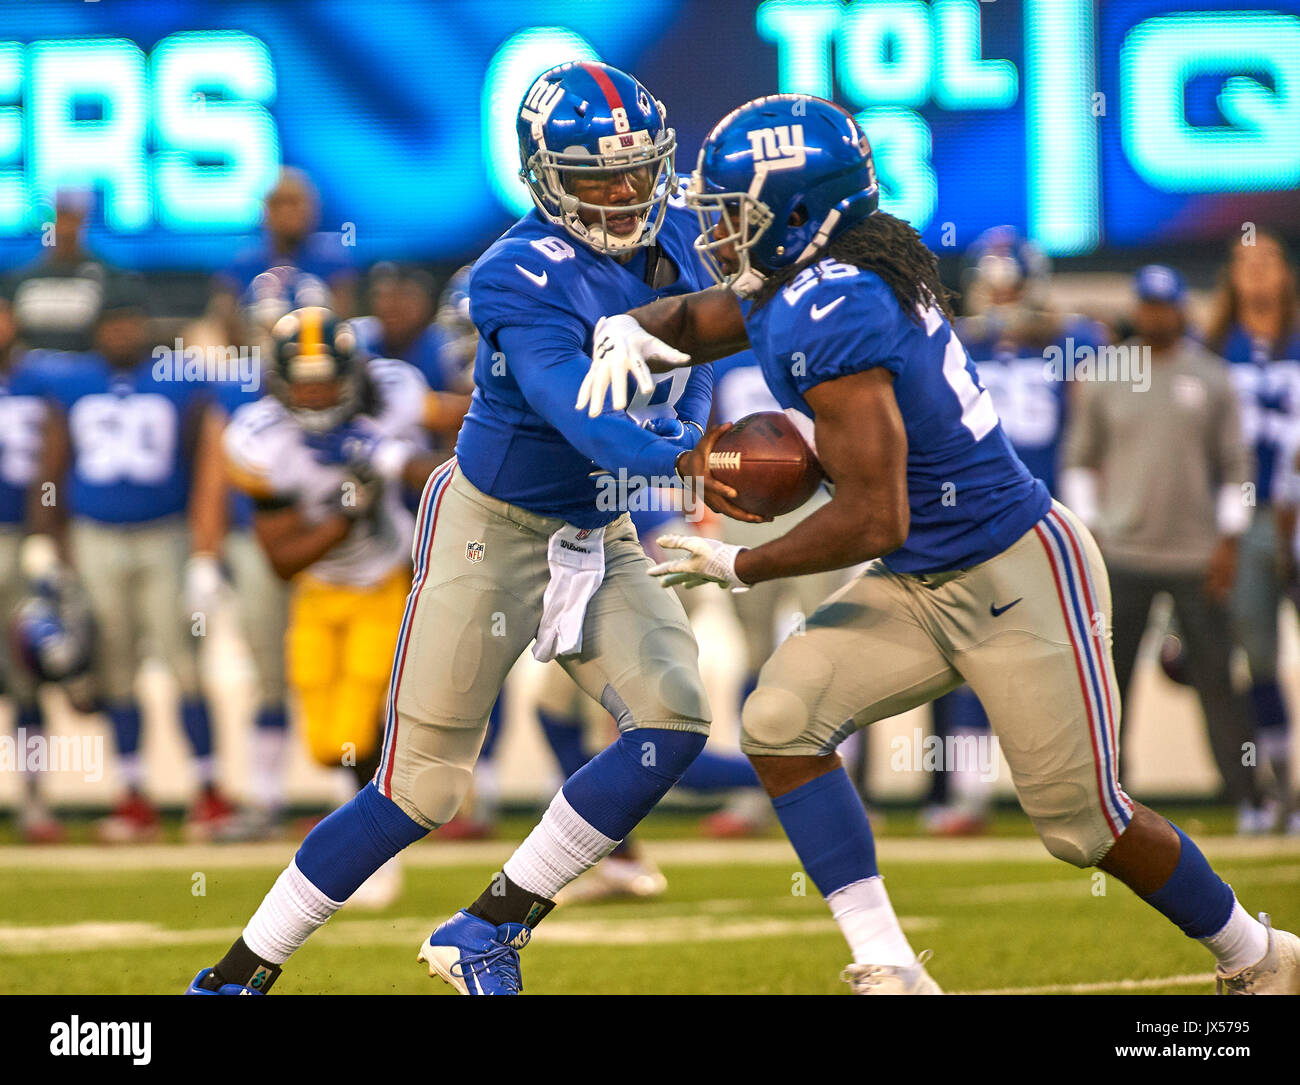 August 11, 2017 - East Rutherford, New Jersey, U.S. - Giants' quarterback Josh Johnson (8) hands off to running back Orleans Darkwa (26) during NFL pre-season action between the Pittsburgh Steelers and the New York Giants at MetLife Stadium in East Rutherford, New Jersey. Duncan Williams/CSM - Stock Image